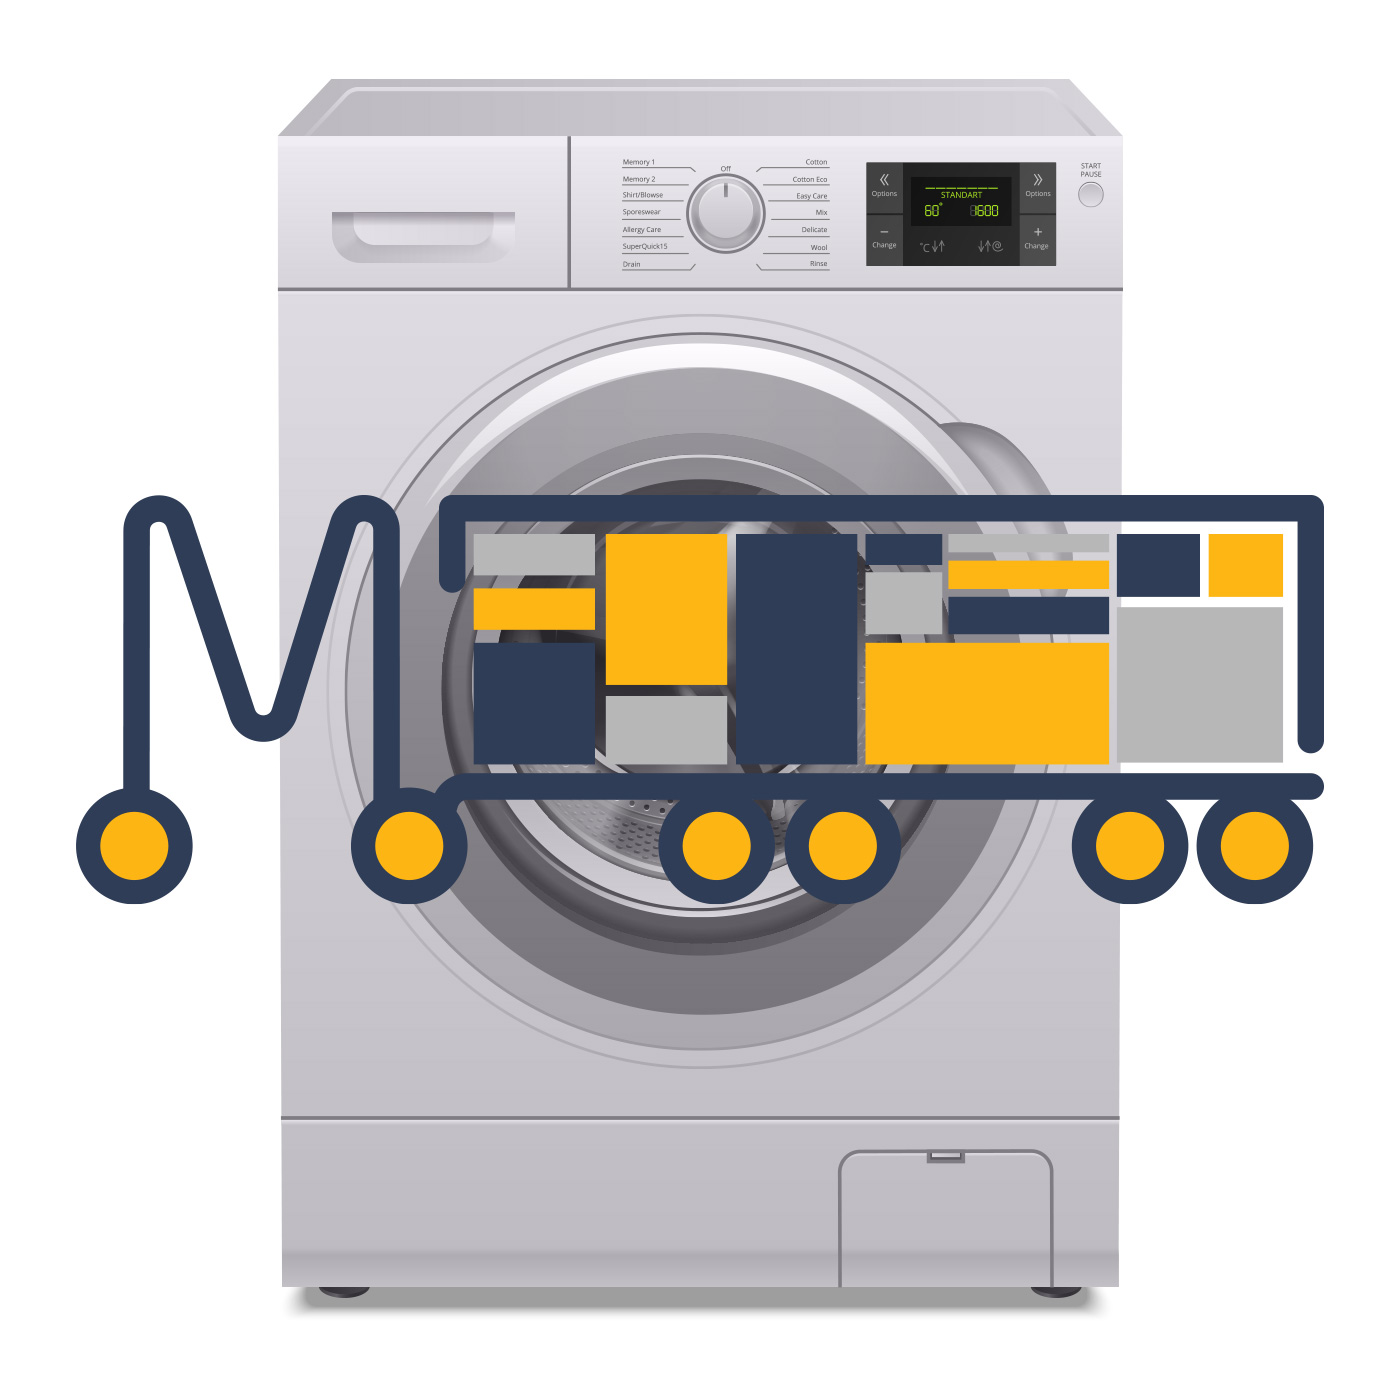 demo_pro_washing_machine_1.jpg